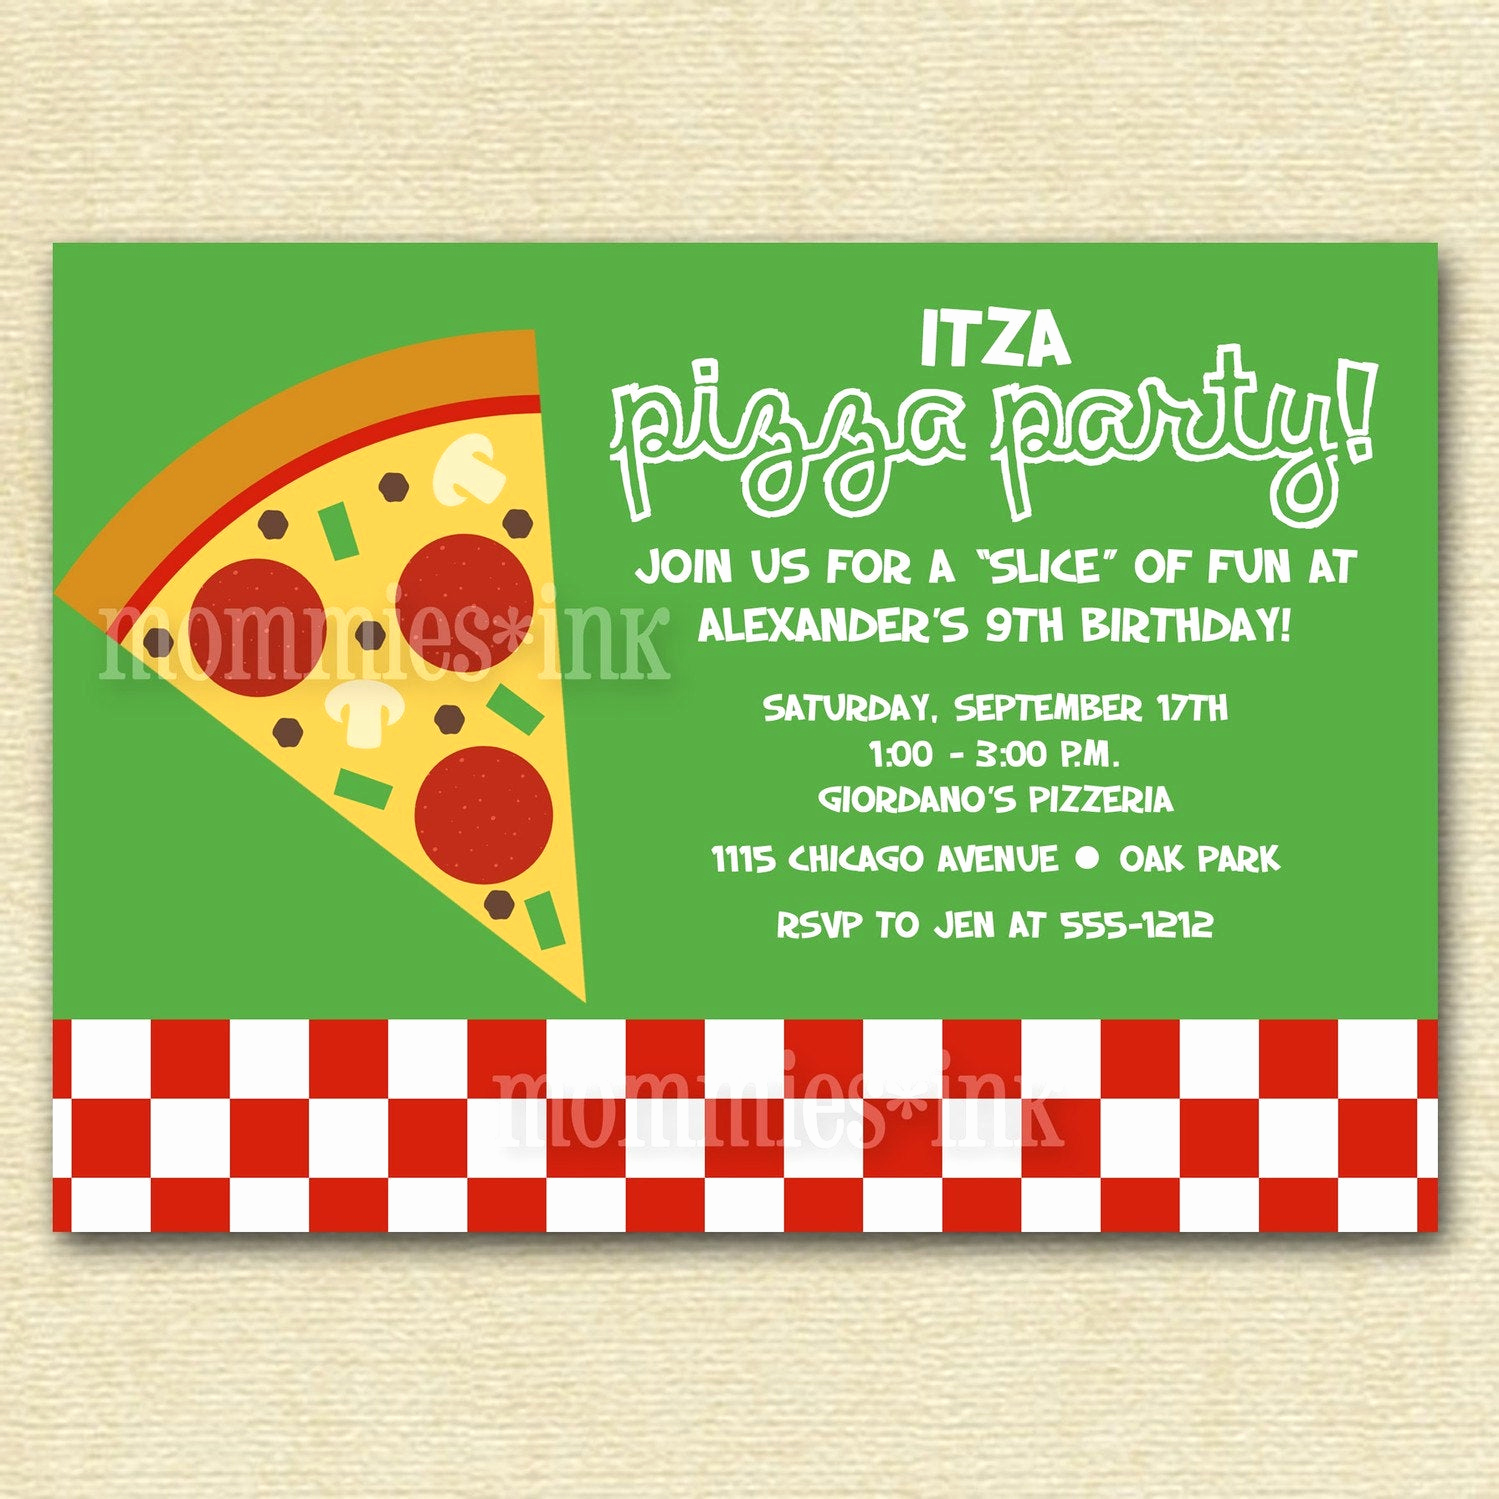 Pizza Party Invitation Templates Beautiful Pizza Party Birthday Invitation Printable by Mommiesink On